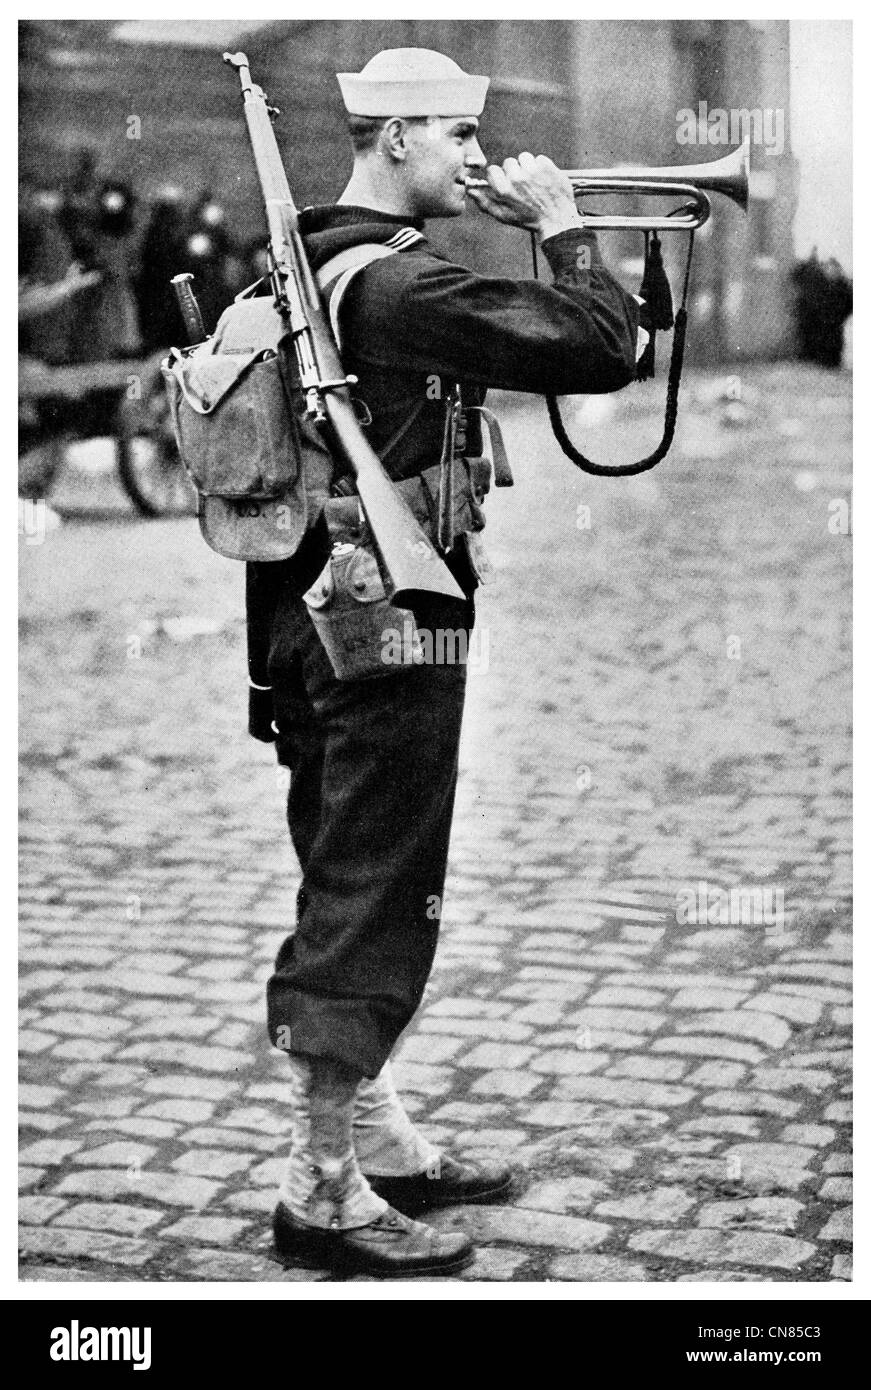 First published 1917 Naval Navy Militia Bugler Sounding a Call instrument Bugle US U.S.A. America American sailor - Stock Image